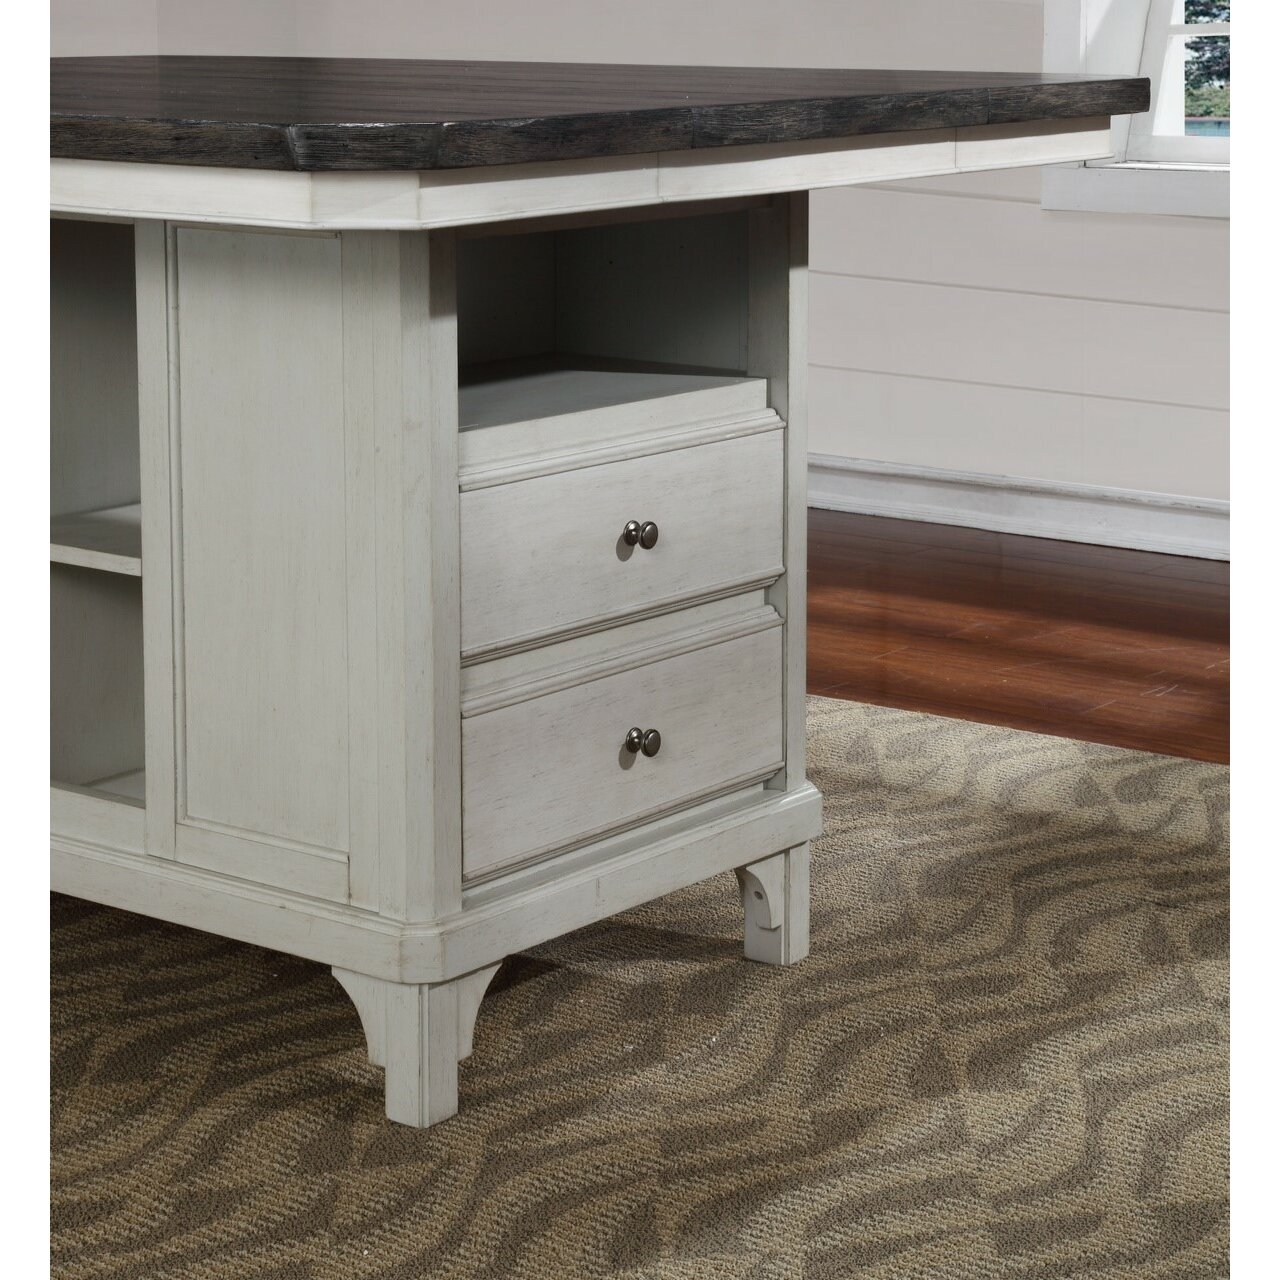 Kitchen Island Furniture: Avalon Furniture Mystic Cay Kitchen Island & Reviews